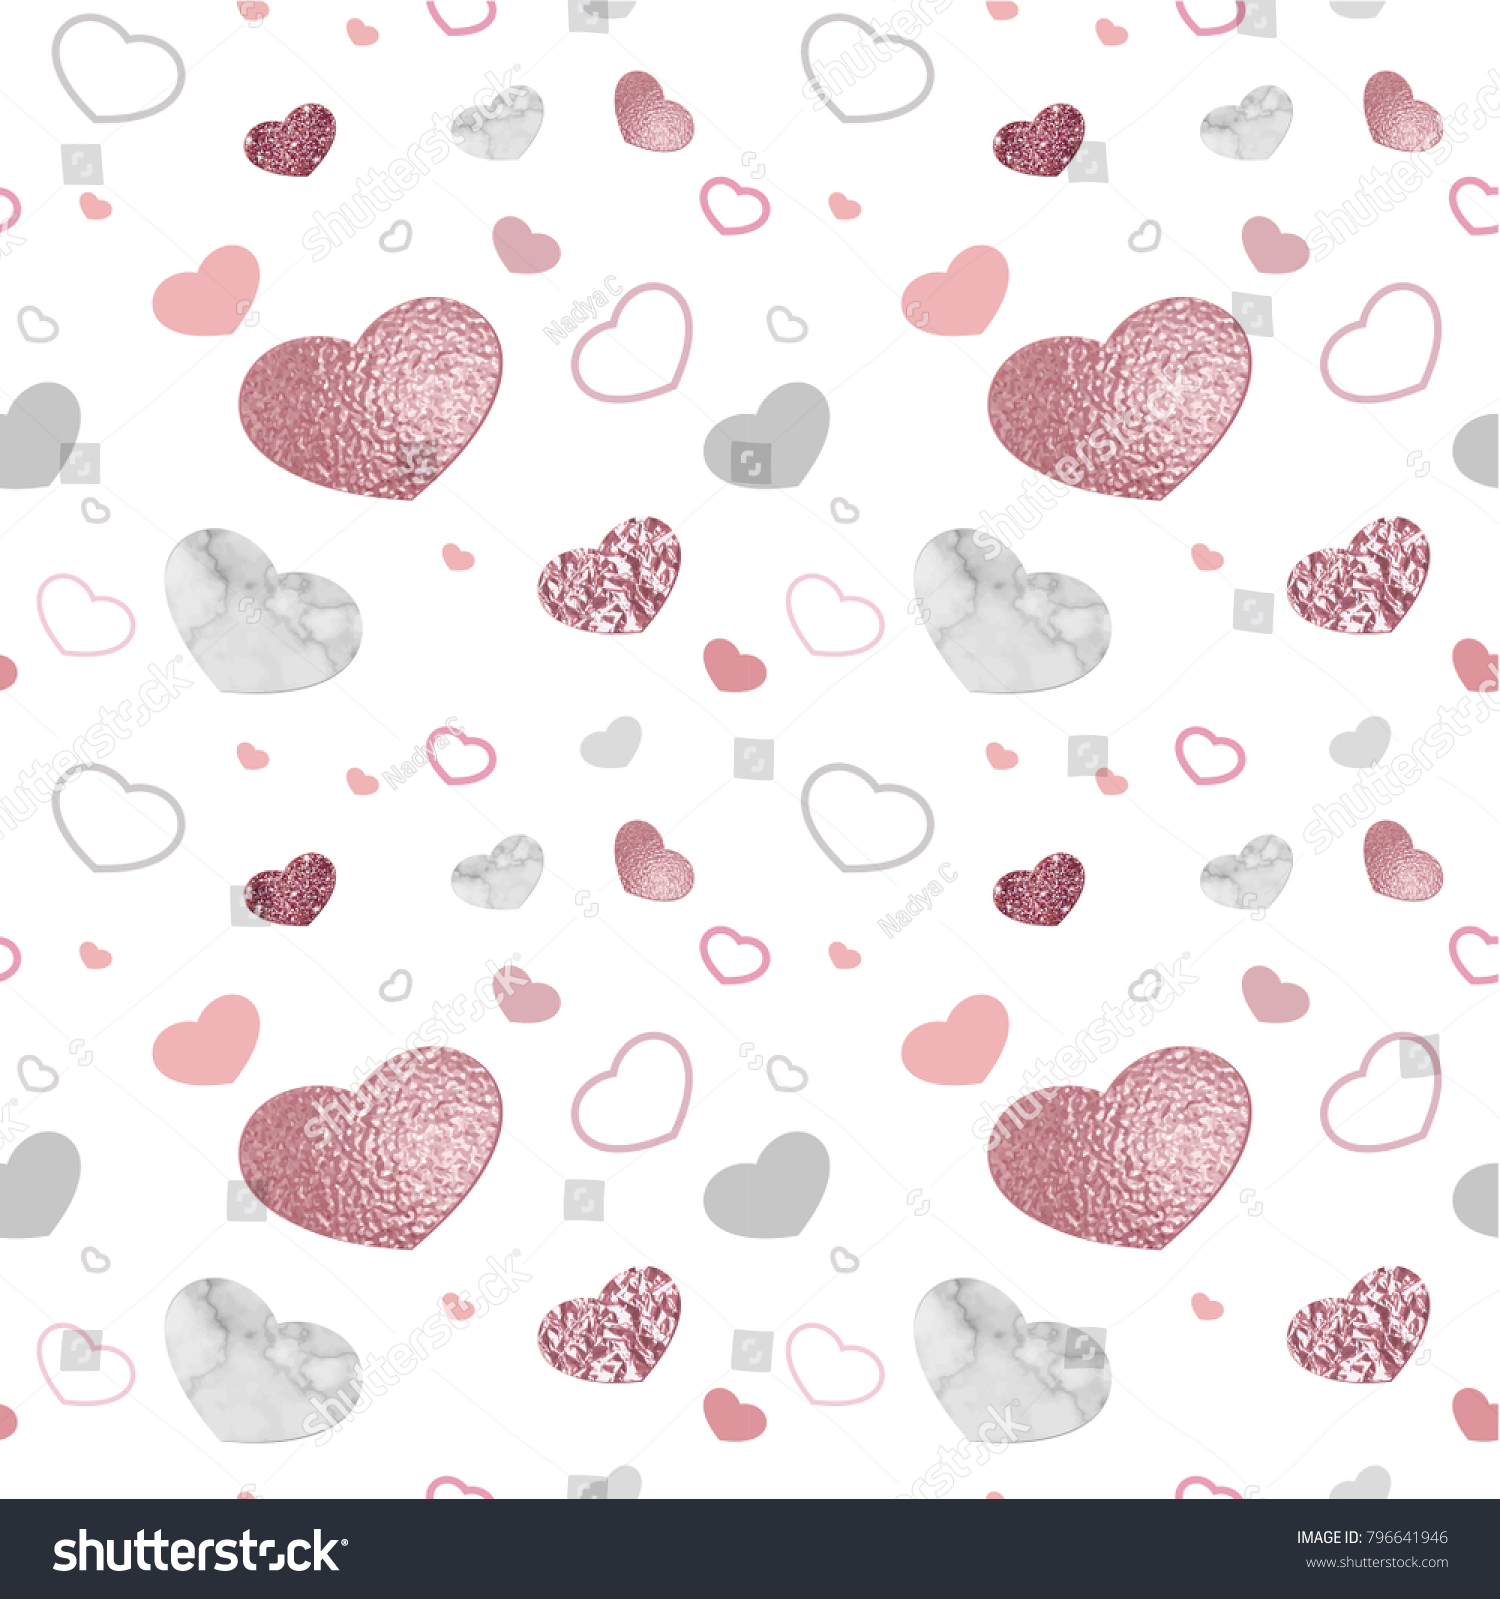 Great Wallpaper Marble Heart - stock-photo-marble-gold-rose-seamless-pattern-for-geometric-poster-repeat-background-in-trendy-minimalist-796641946  You Should Have_41774.jpg